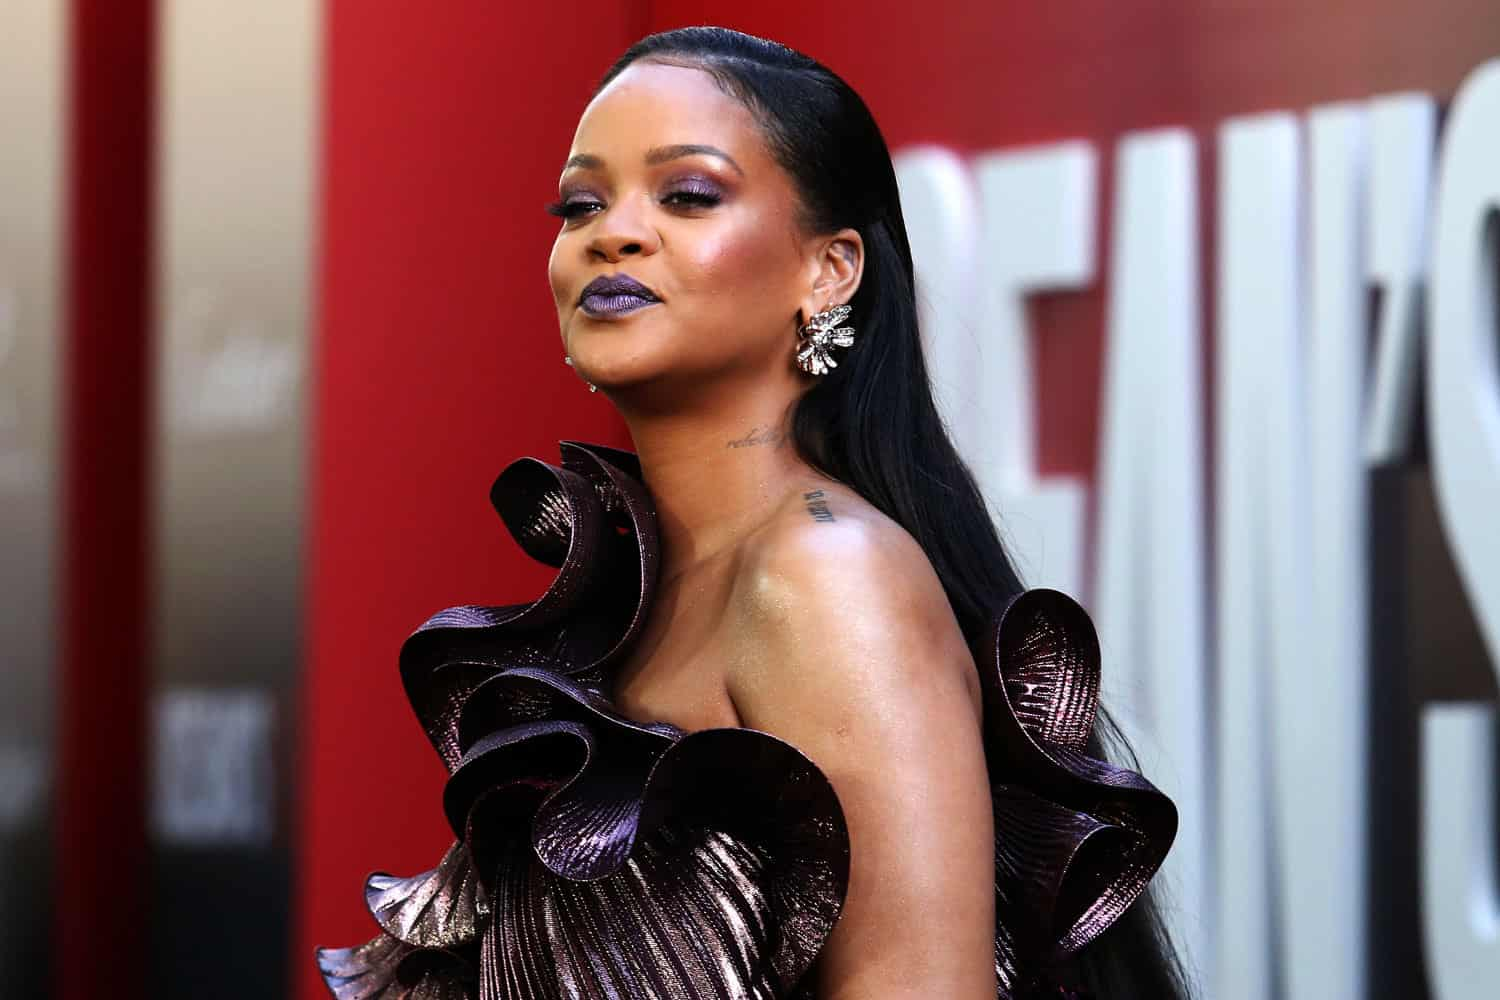 Rihanna, Twitter CEO donate $4.2M to combat quarantine-induced domestic violence